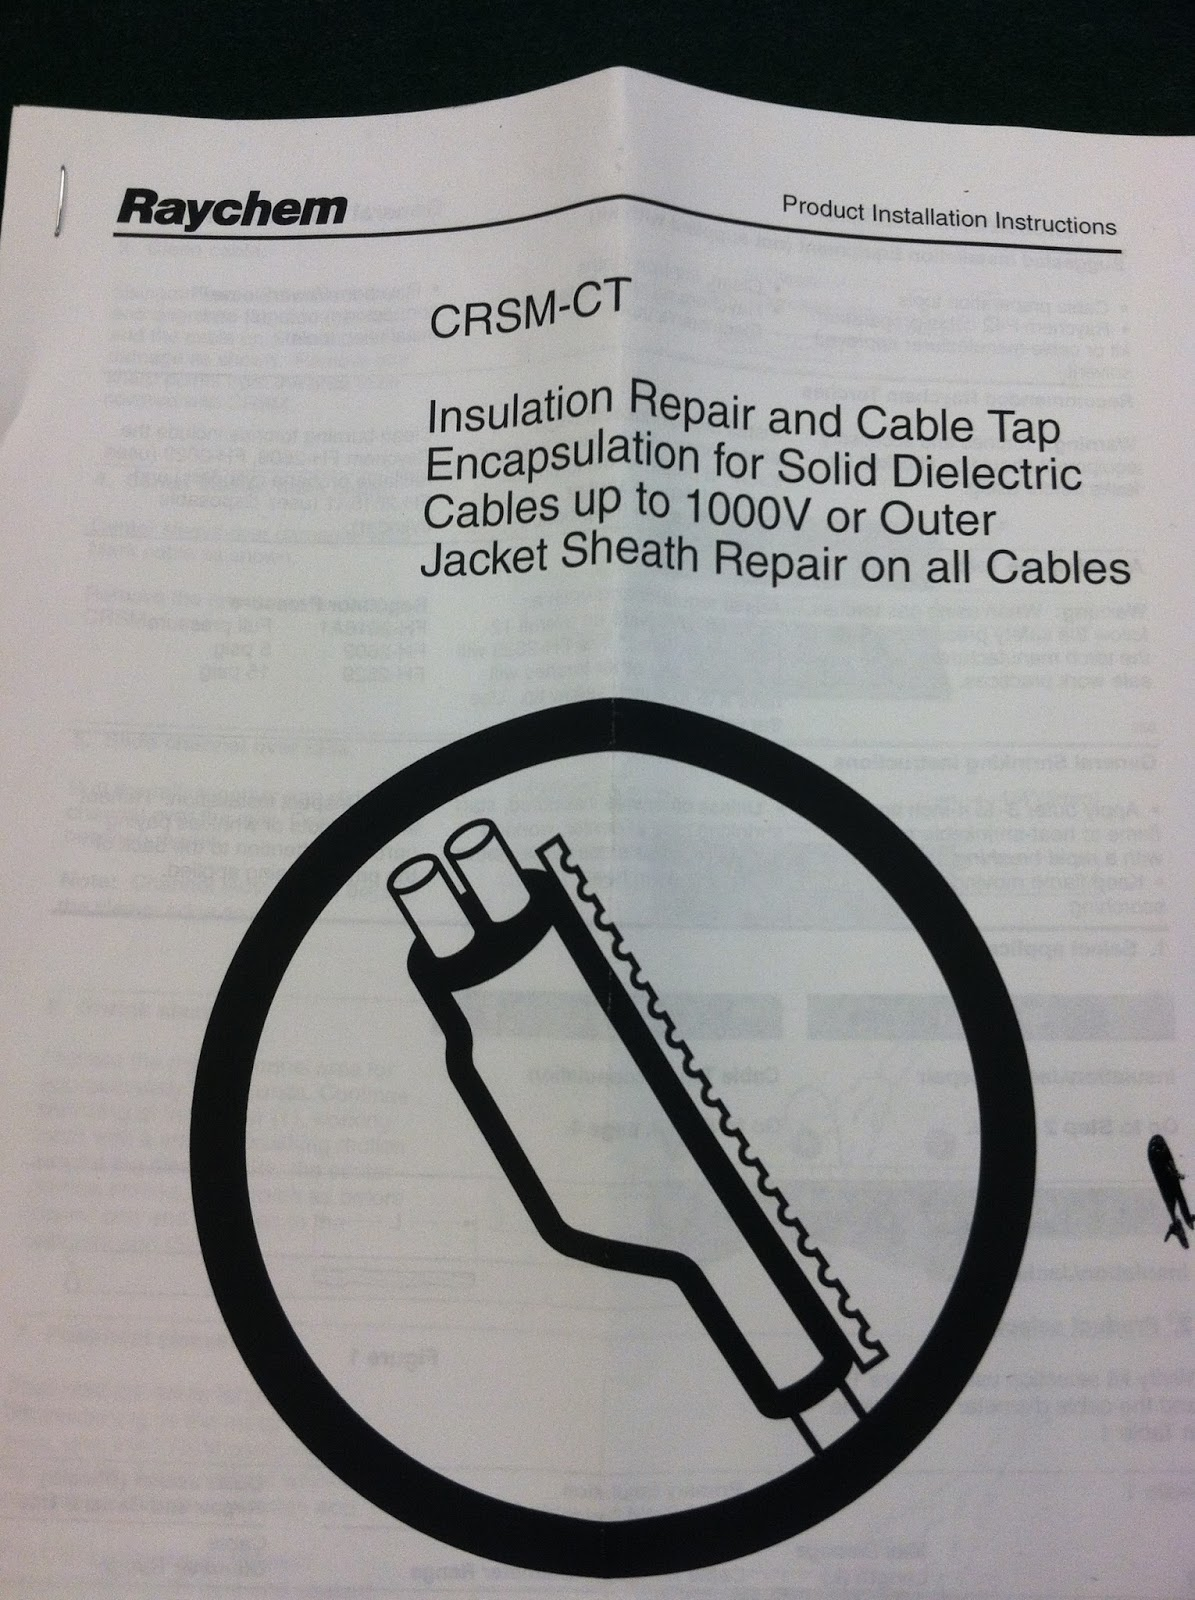 Raychem Heat Shrink: What is Included in a CRSM-CT Kit?